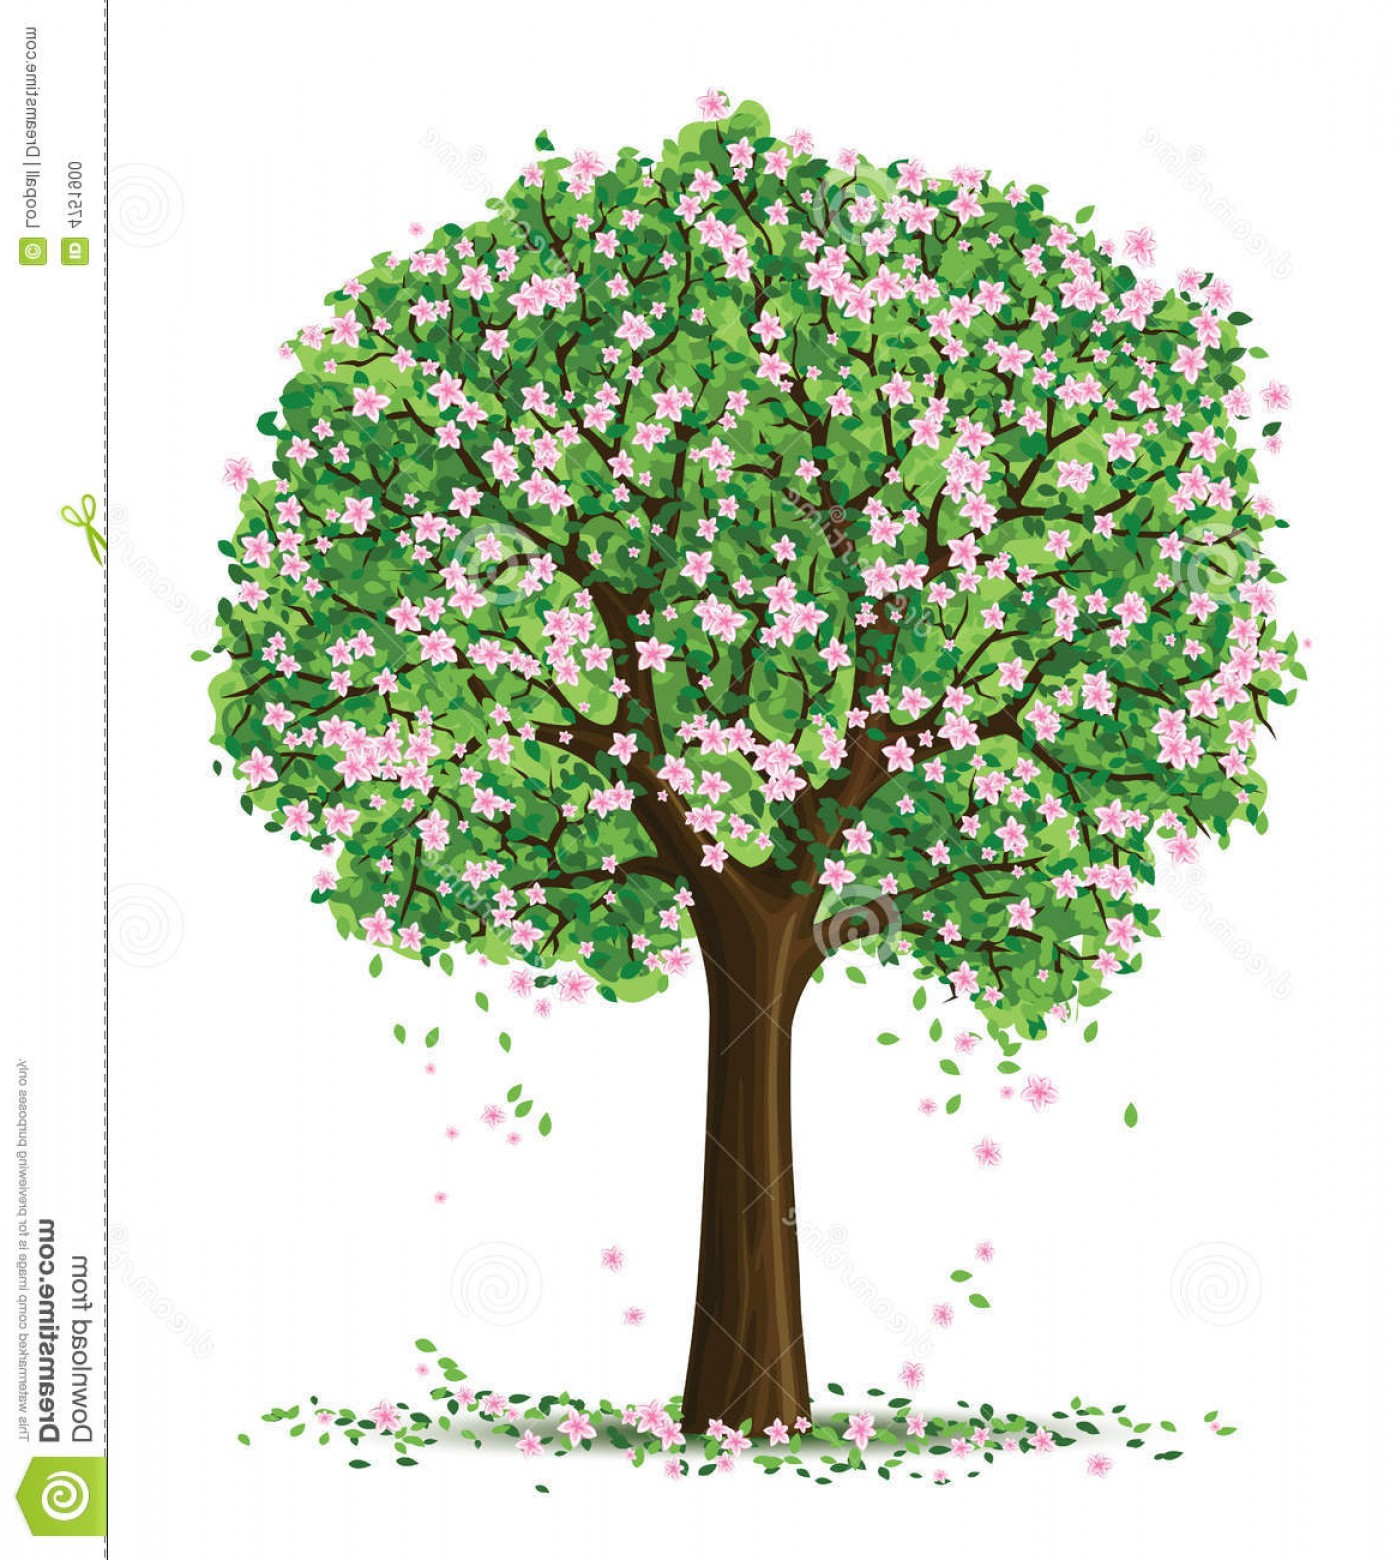 Spring Vector Silhouette: Stock Photo Vector Silhouette Spring Tree Image